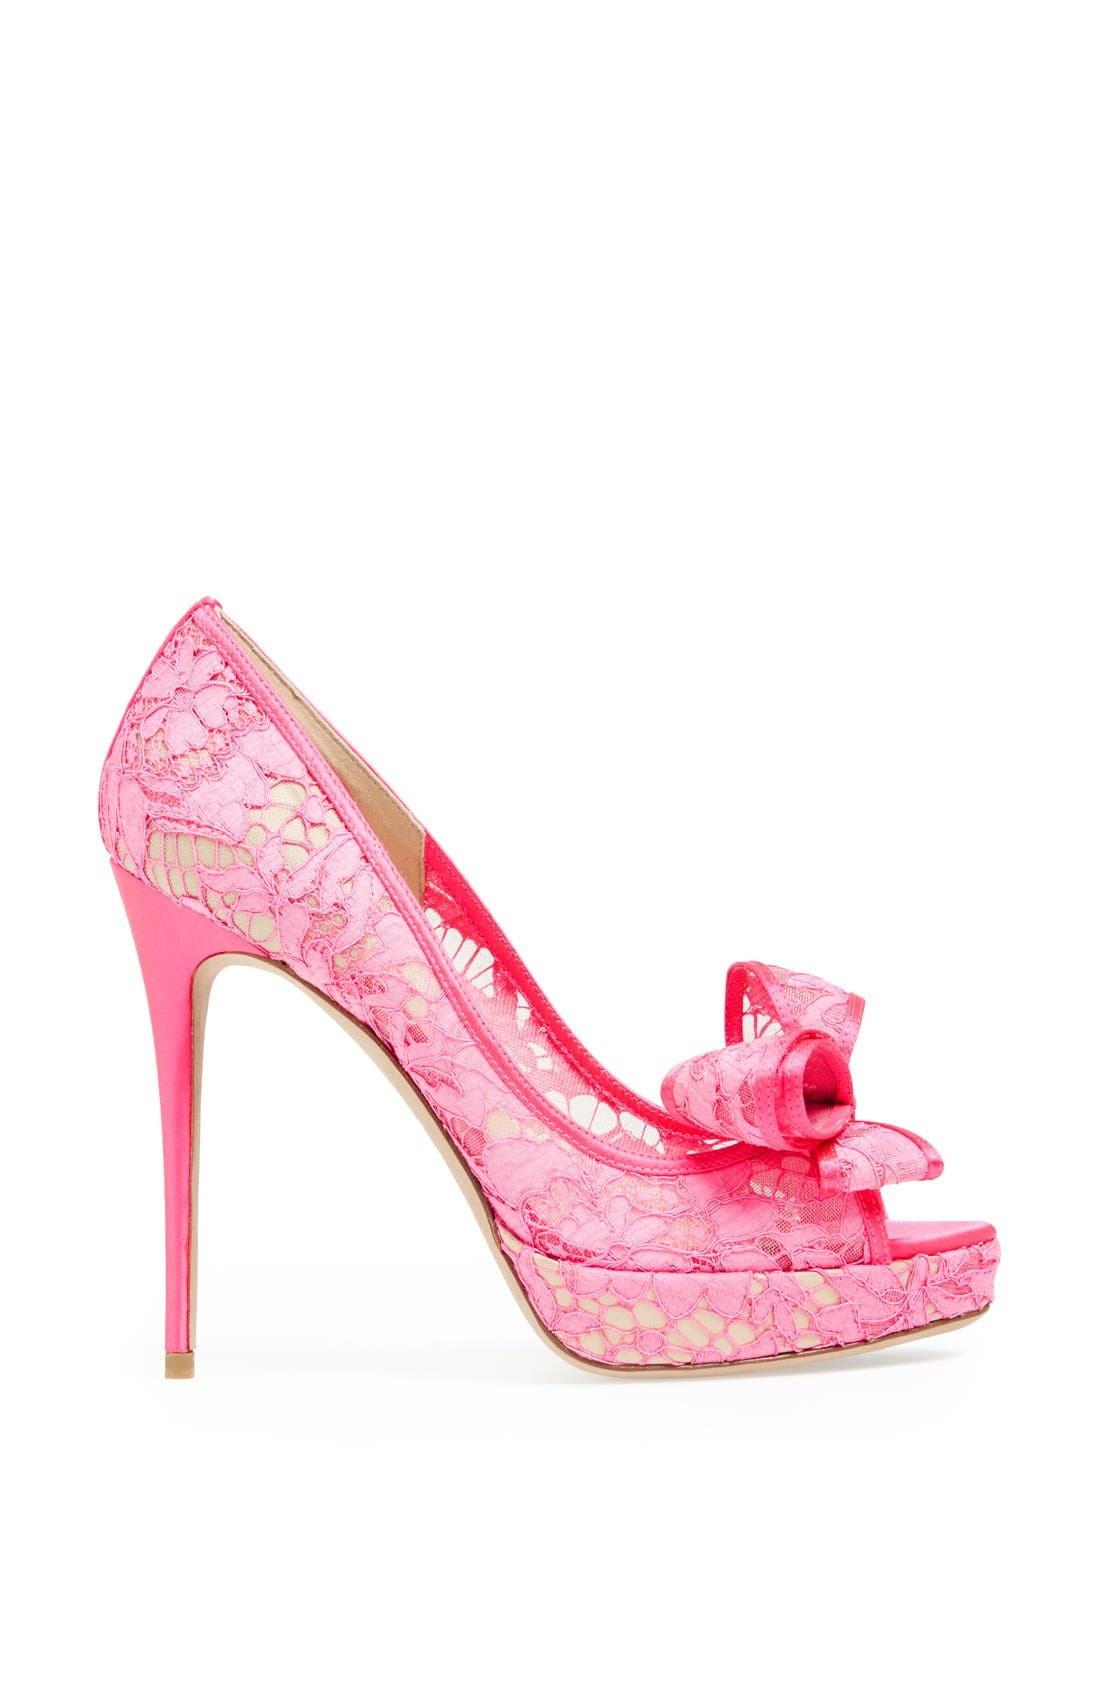 'Lace Couture Bow' Open Toe Pump,                             Alternate thumbnail 4, color,                             651